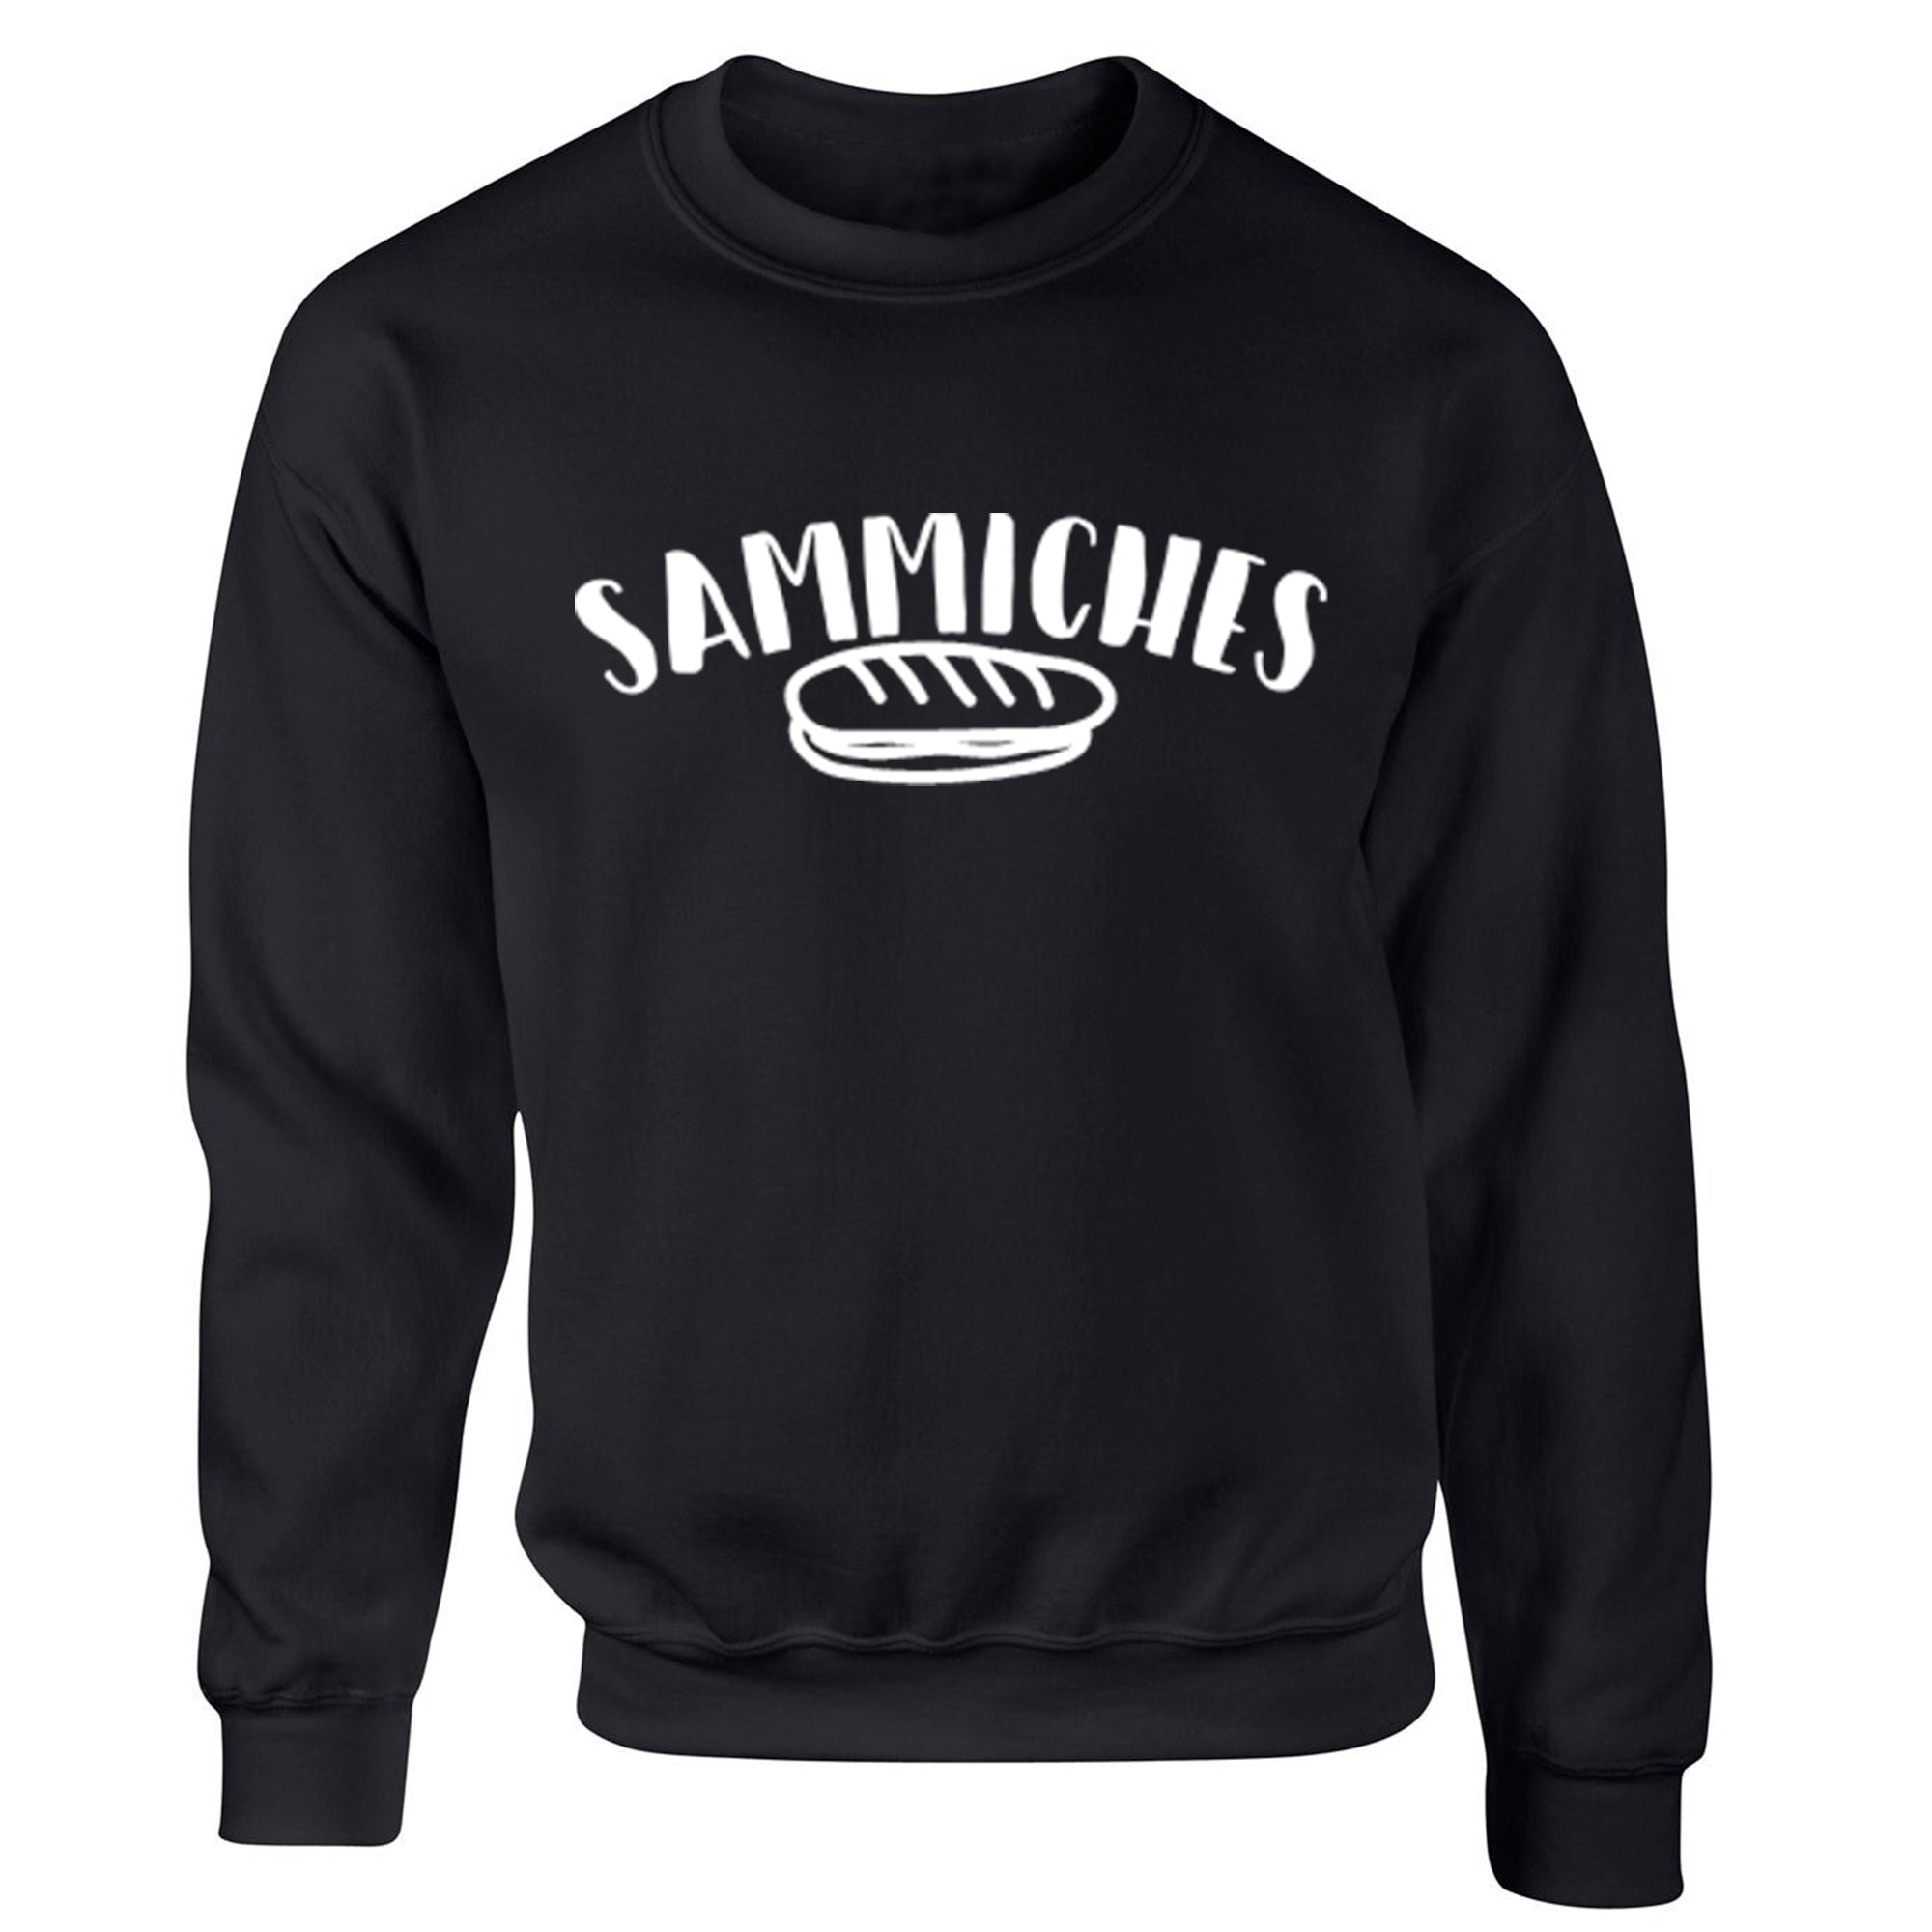 Sammiches Unisex Jumper S0328 - Illustrated Identity Ltd.